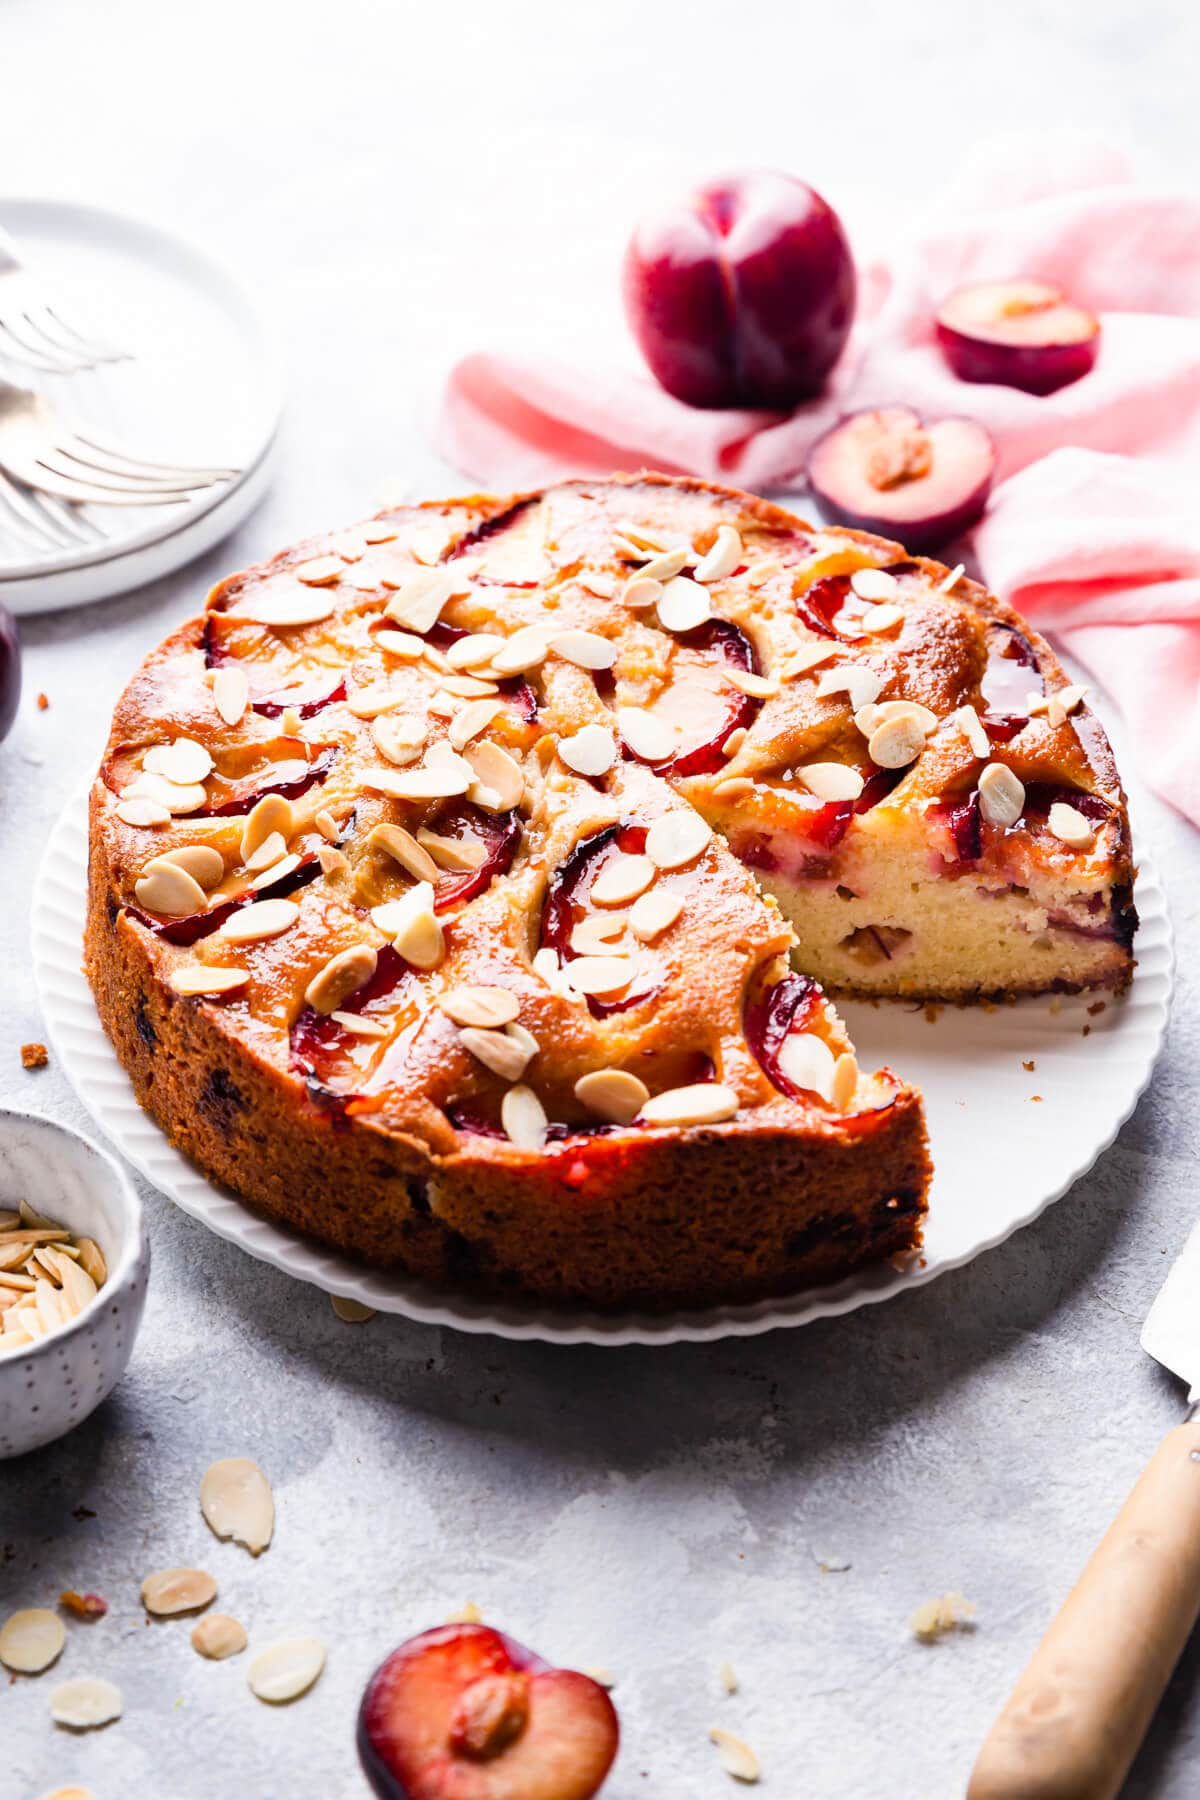 45 degree angle view of plum and almond cake with slice cut out